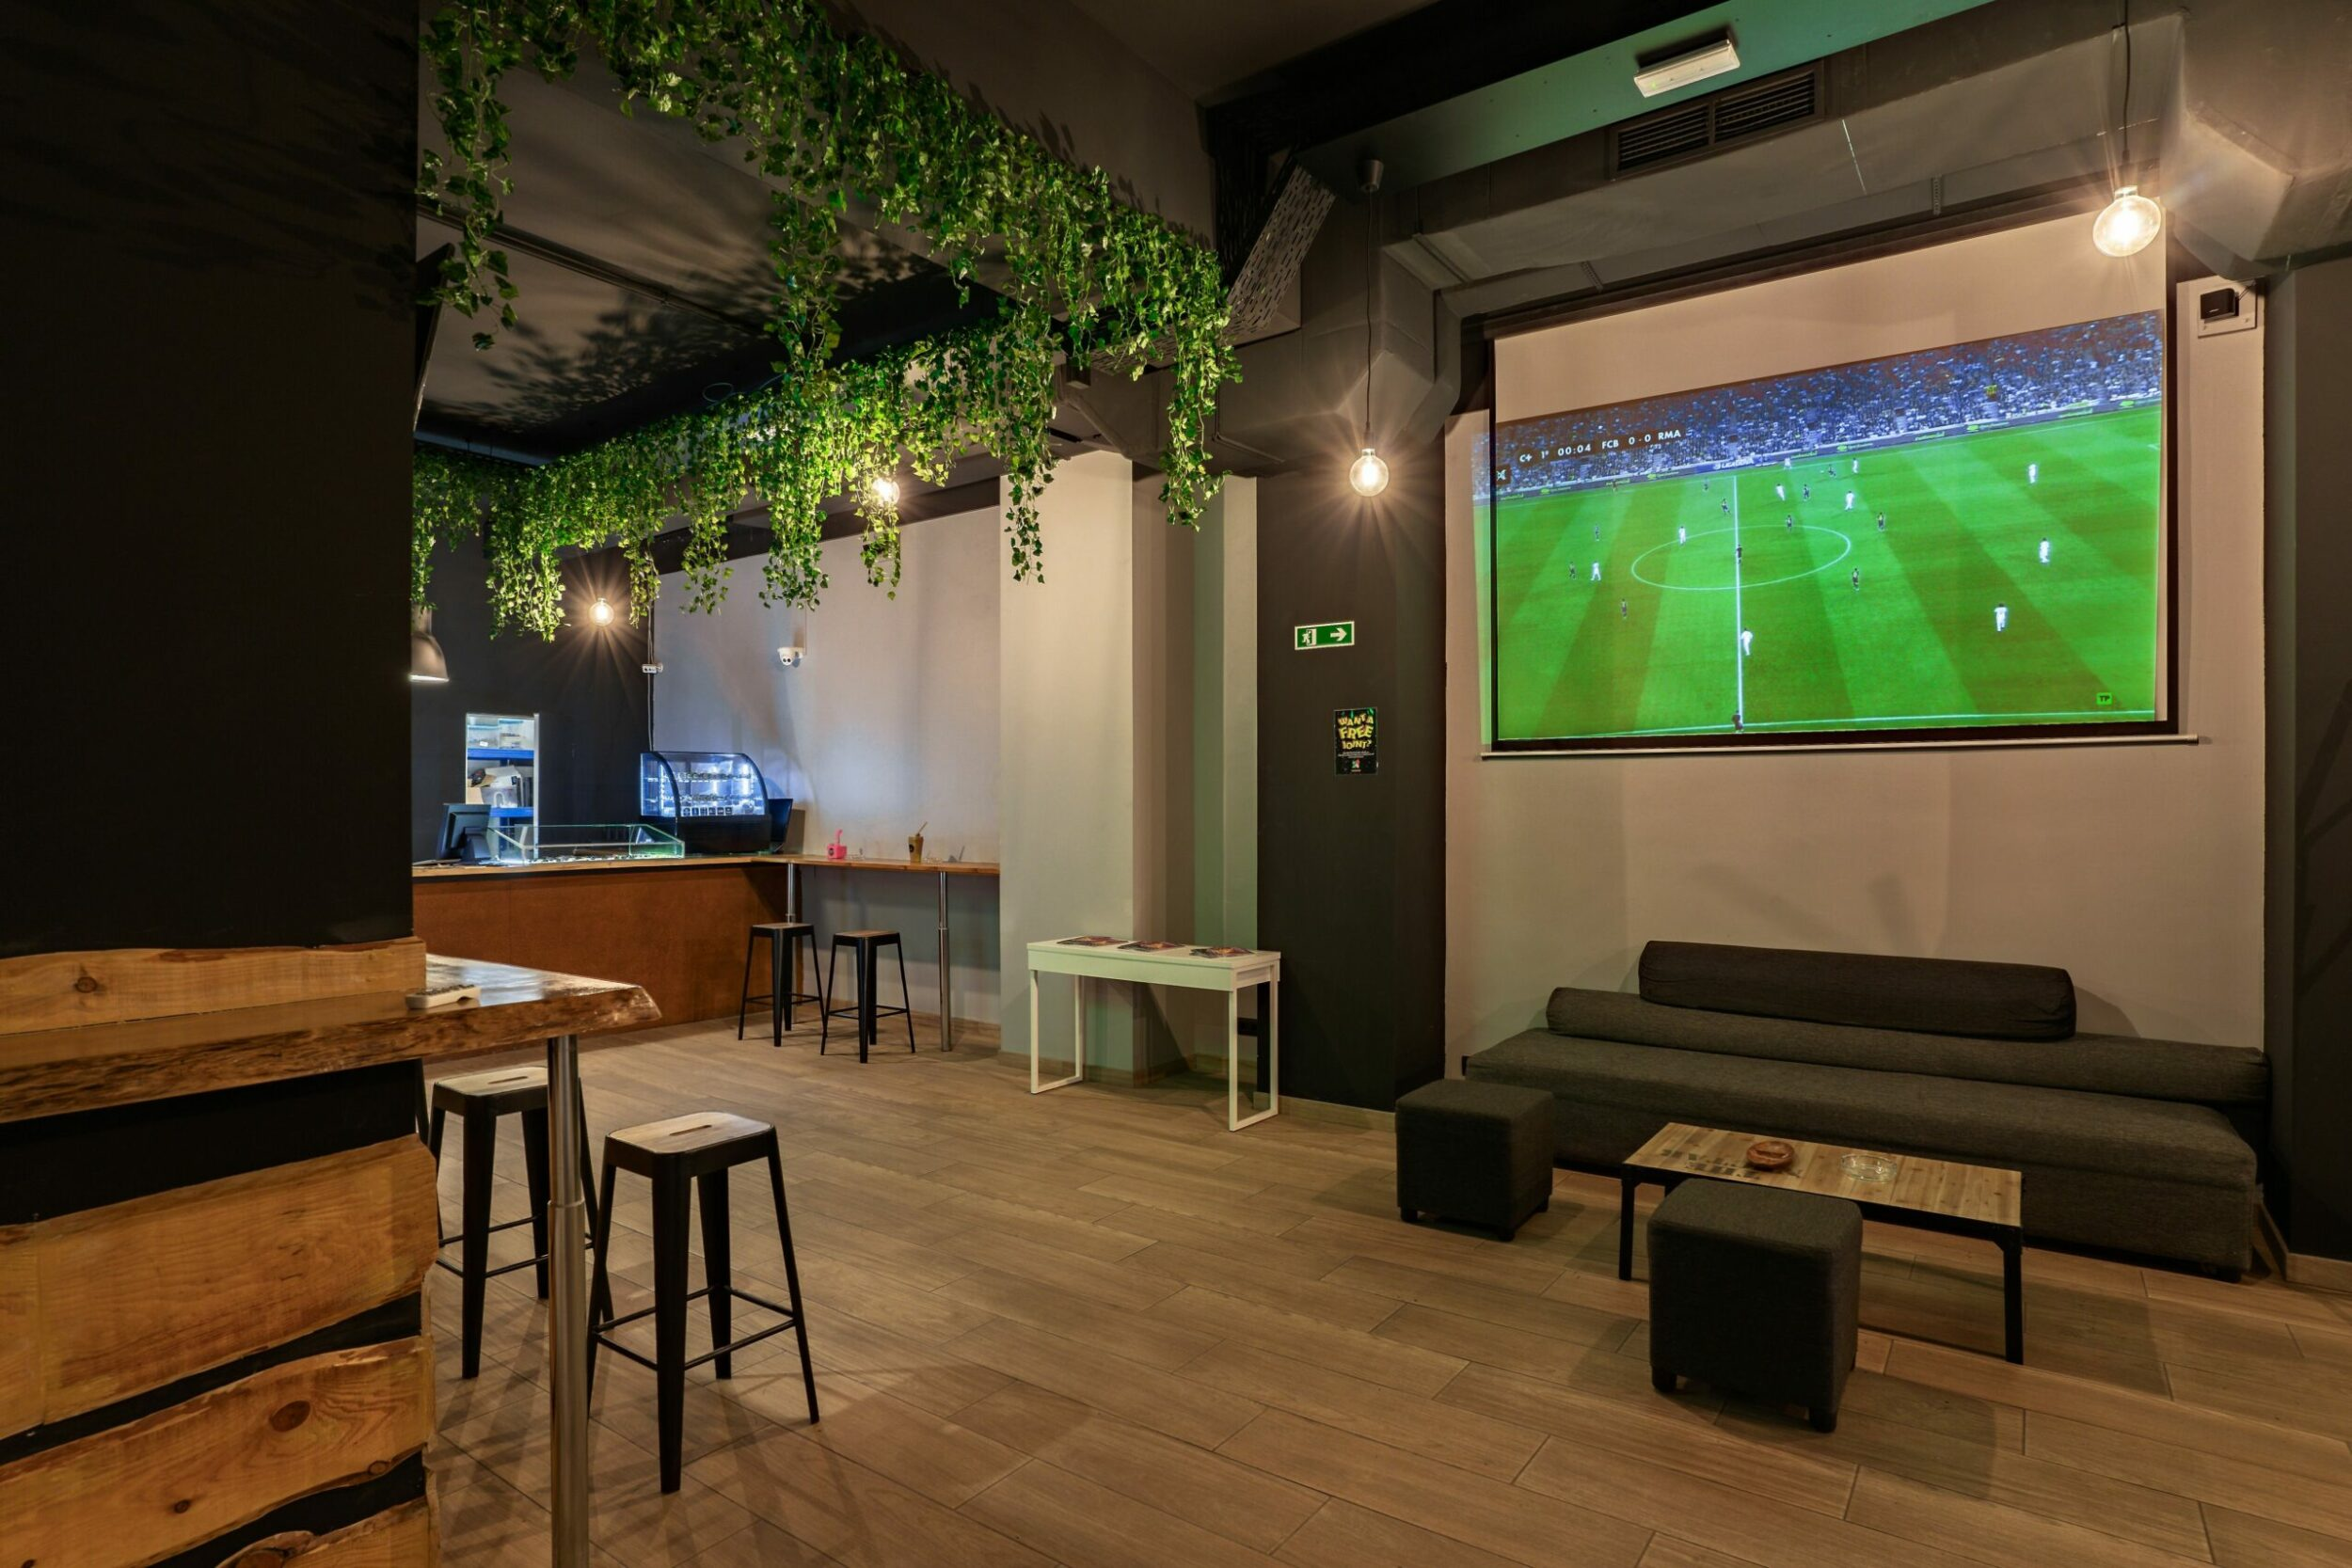 large screen for watching football at the club